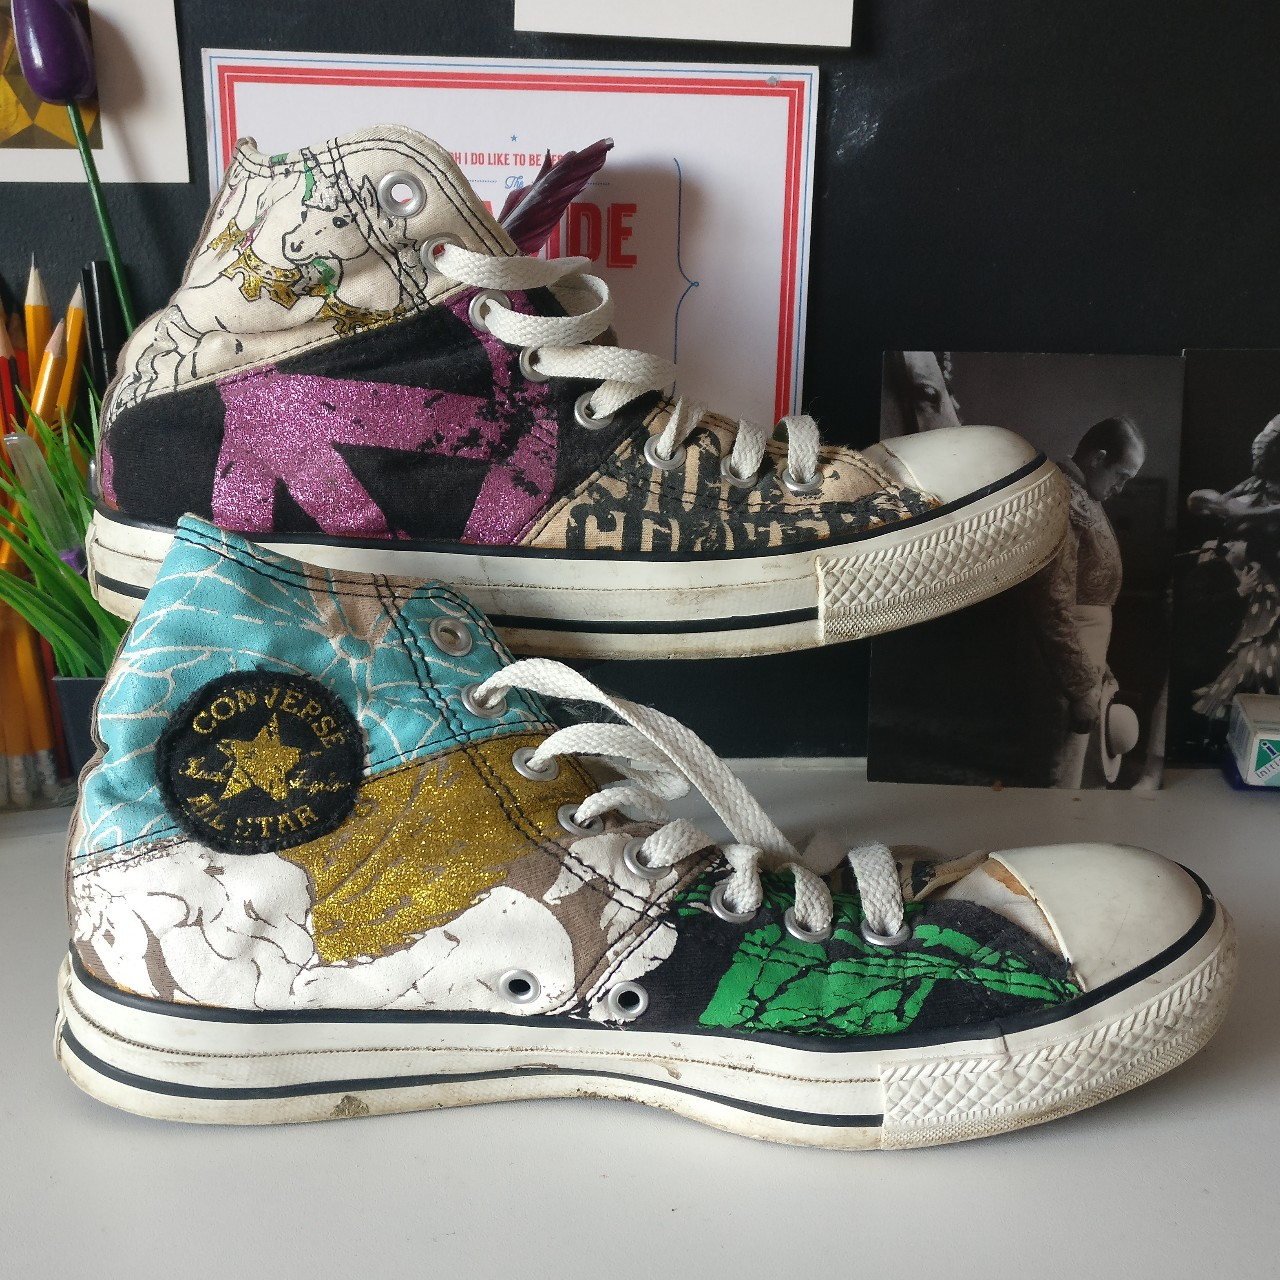 Special edition converse Were exclusive to a store Depop